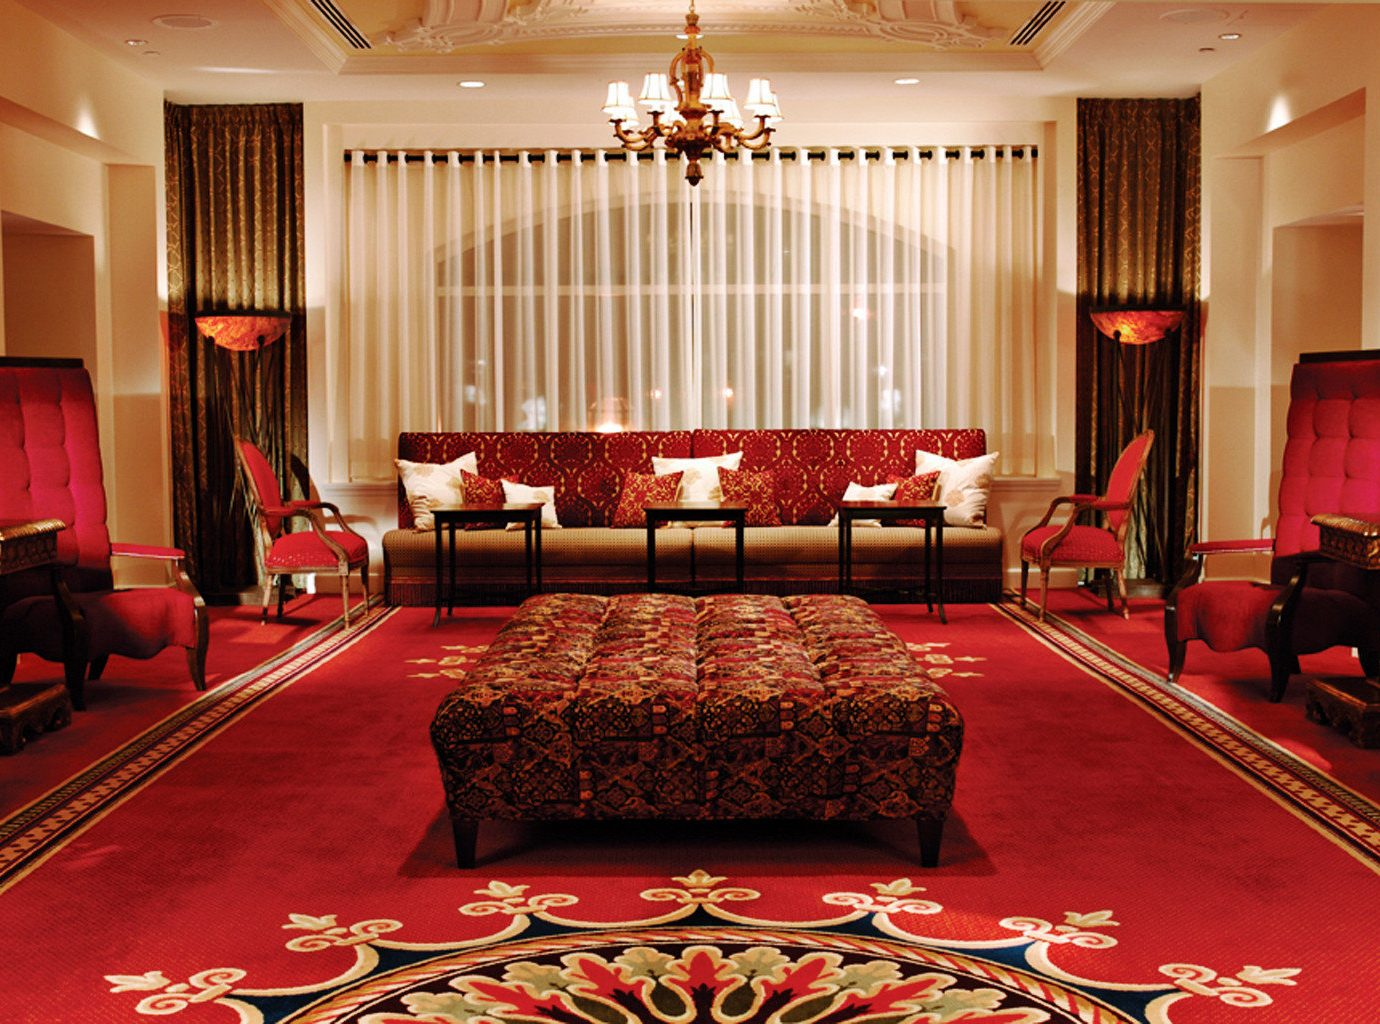 Elegant Historic Hotels Living Lounge Luxury indoor room wall red floor window ceiling function hall Suite decorated rug interior design quinceañera ballroom furniture billiard room hotel several